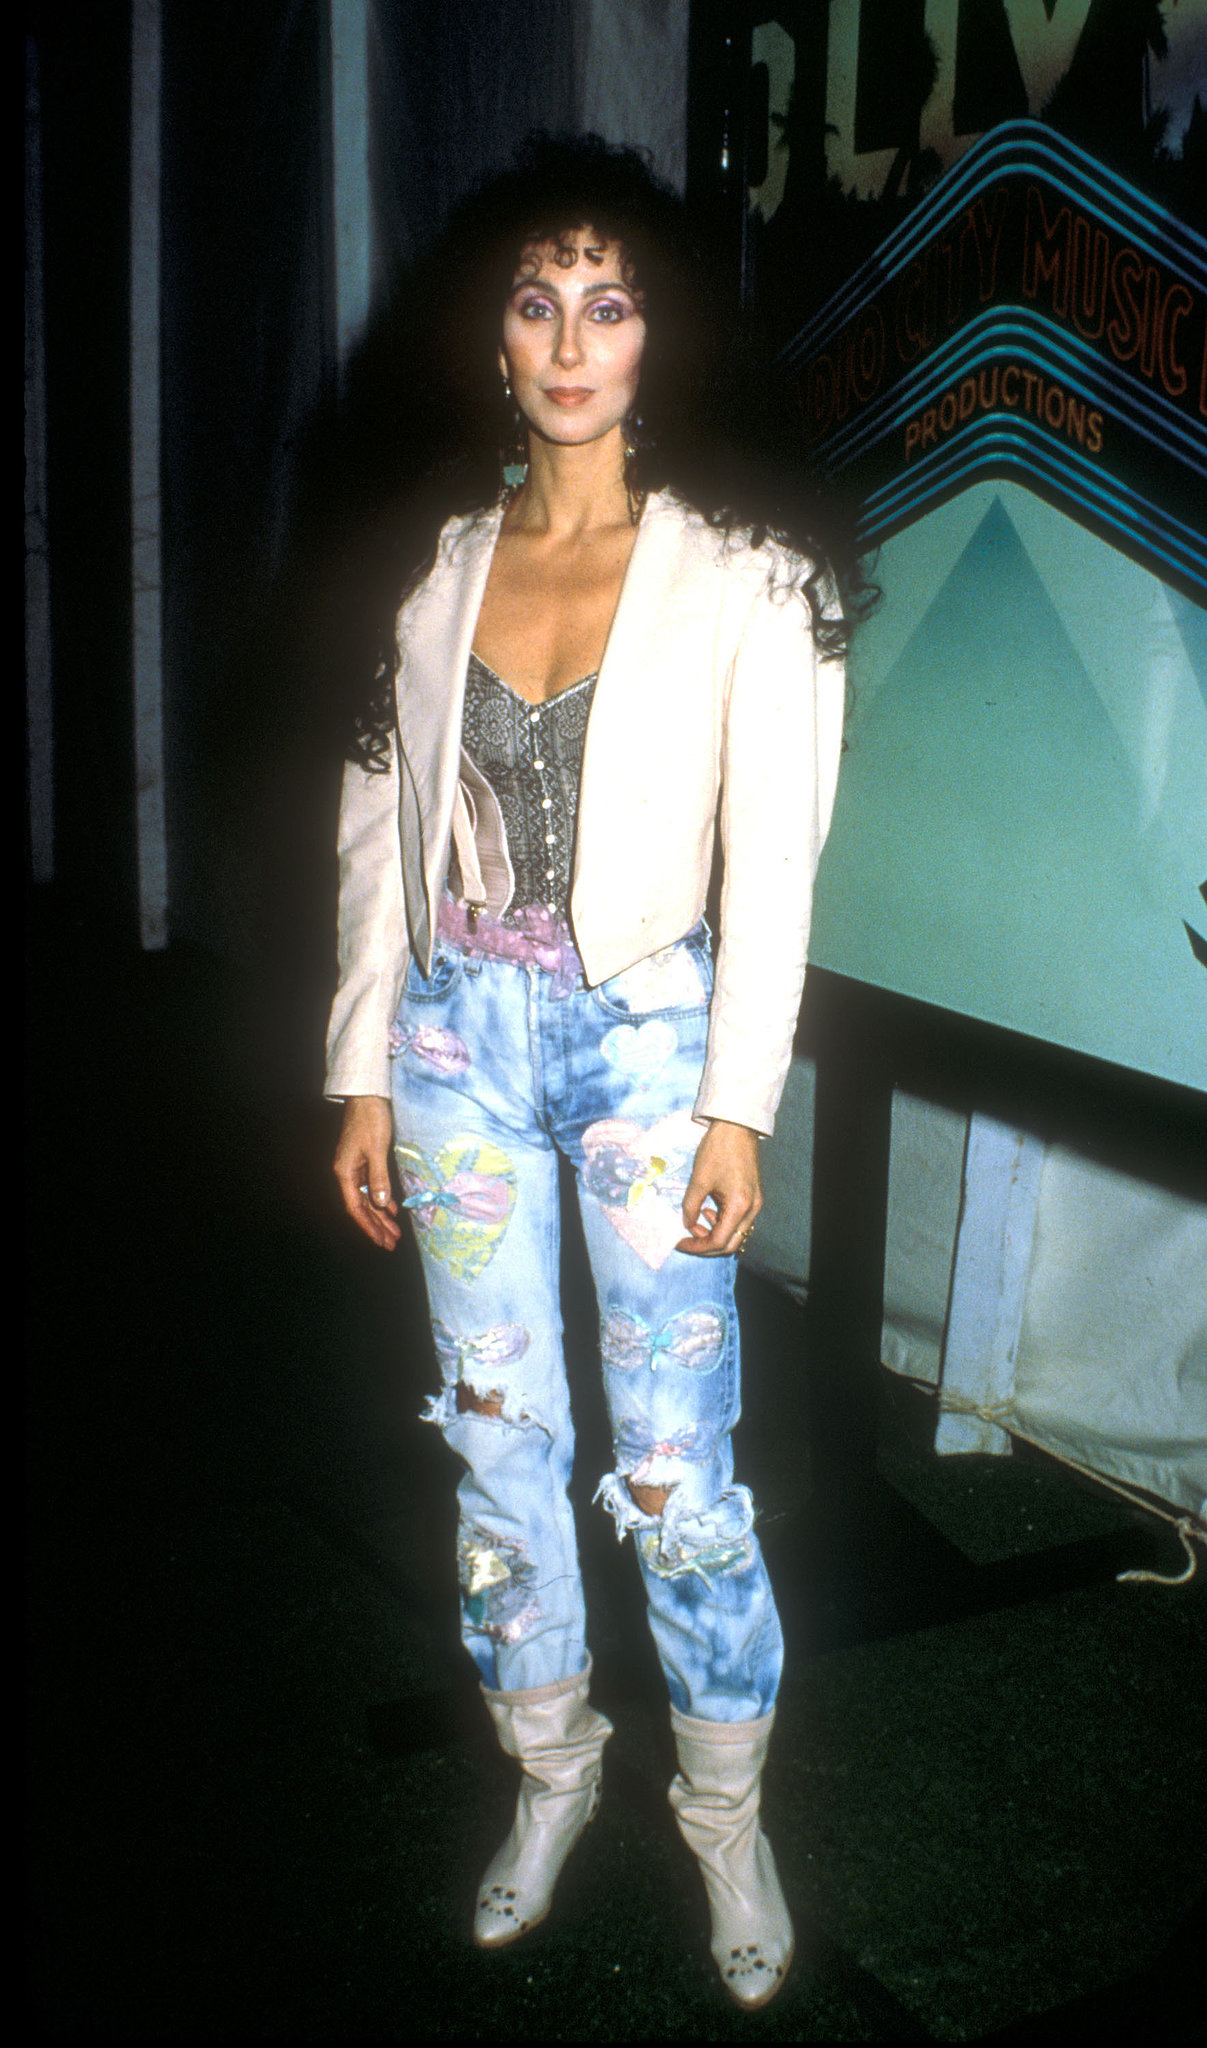 Cher was snapped backstage in ripped jeans and a white leather jacket at the 1988 show